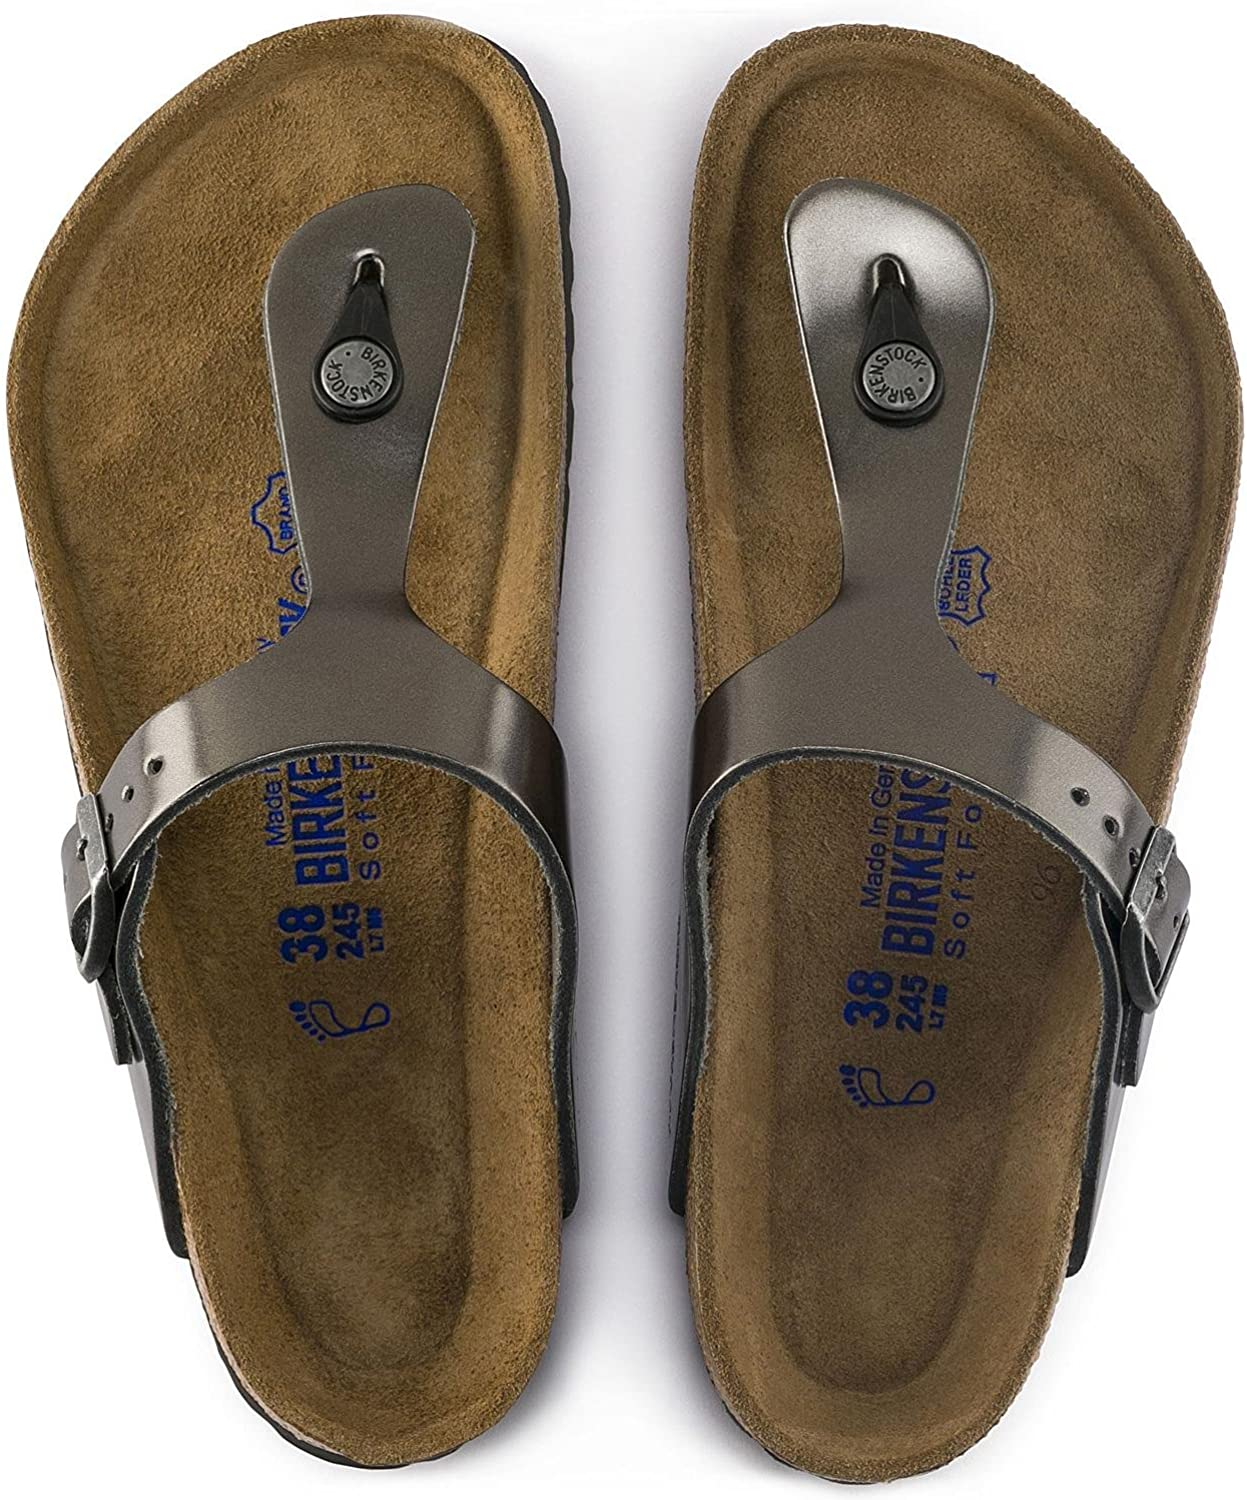 Birkenstock Gizeh Soft Tongs 1003676 Anthracite MéTALLIQUE